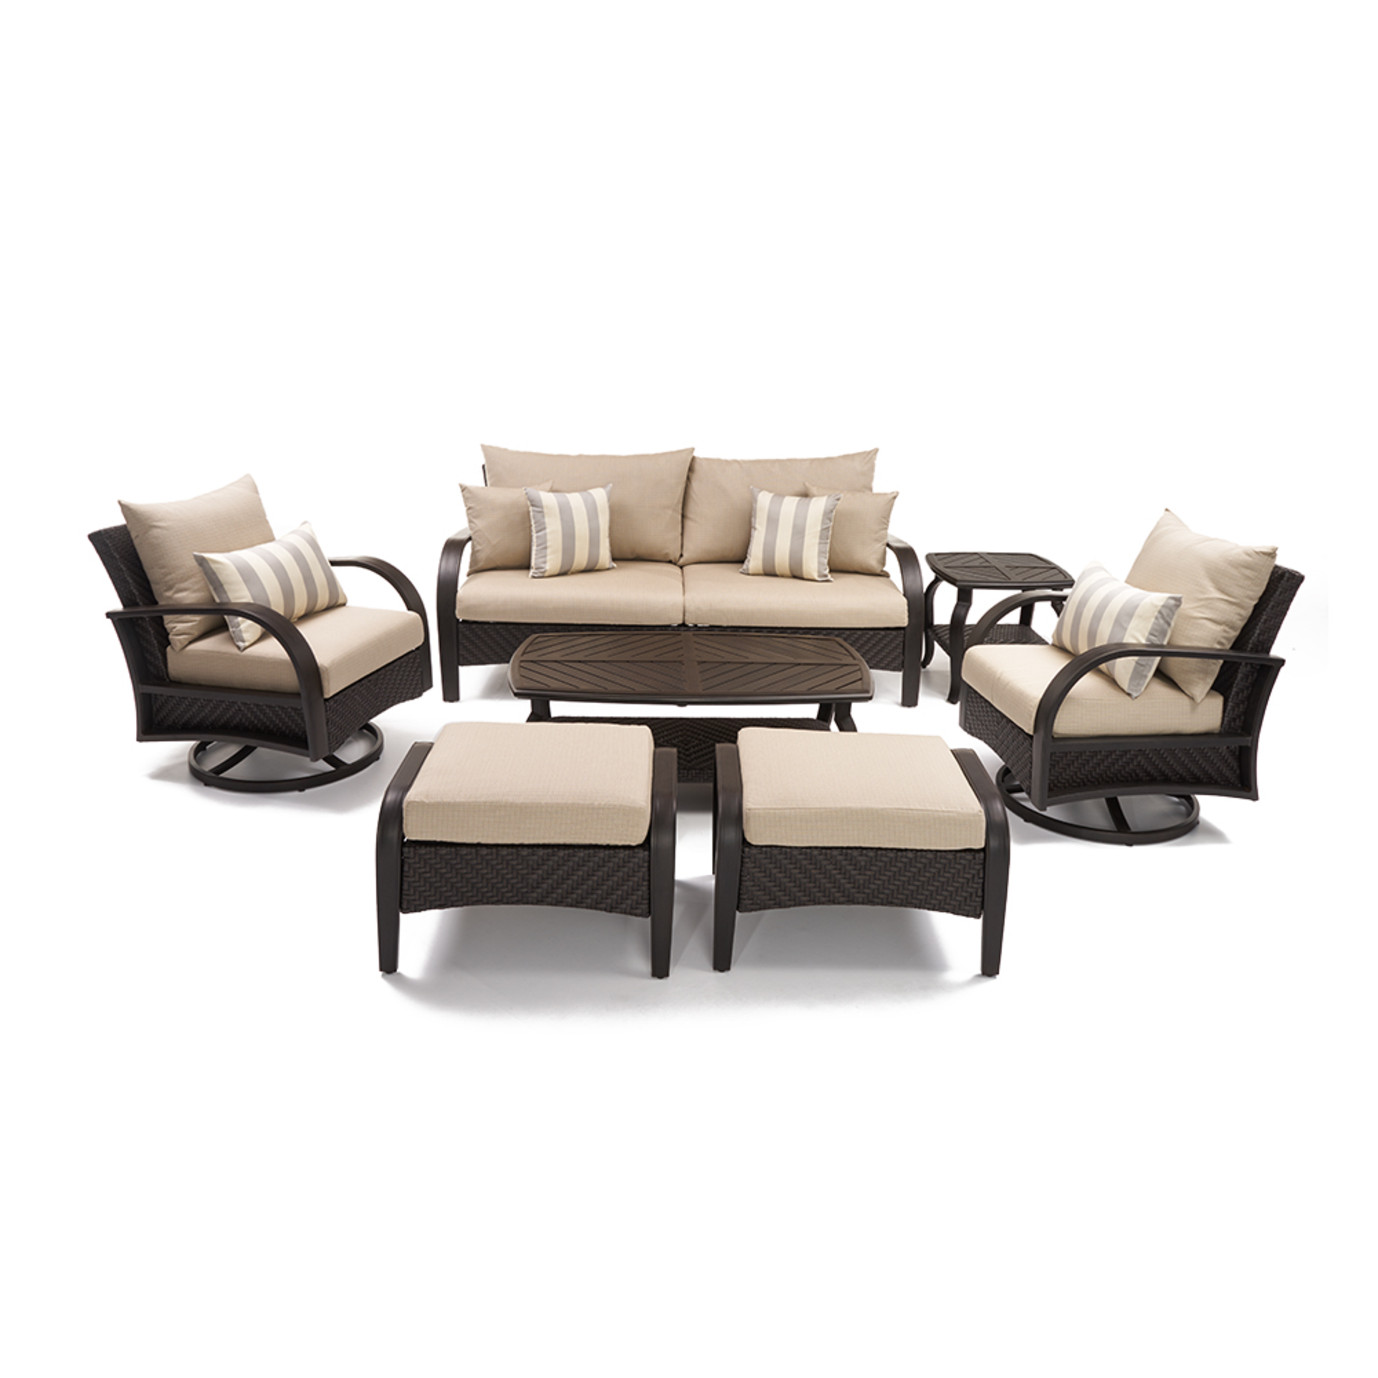 Barcelo™ 7 Piece Motion Club Deep Seating Set - Slate Gray